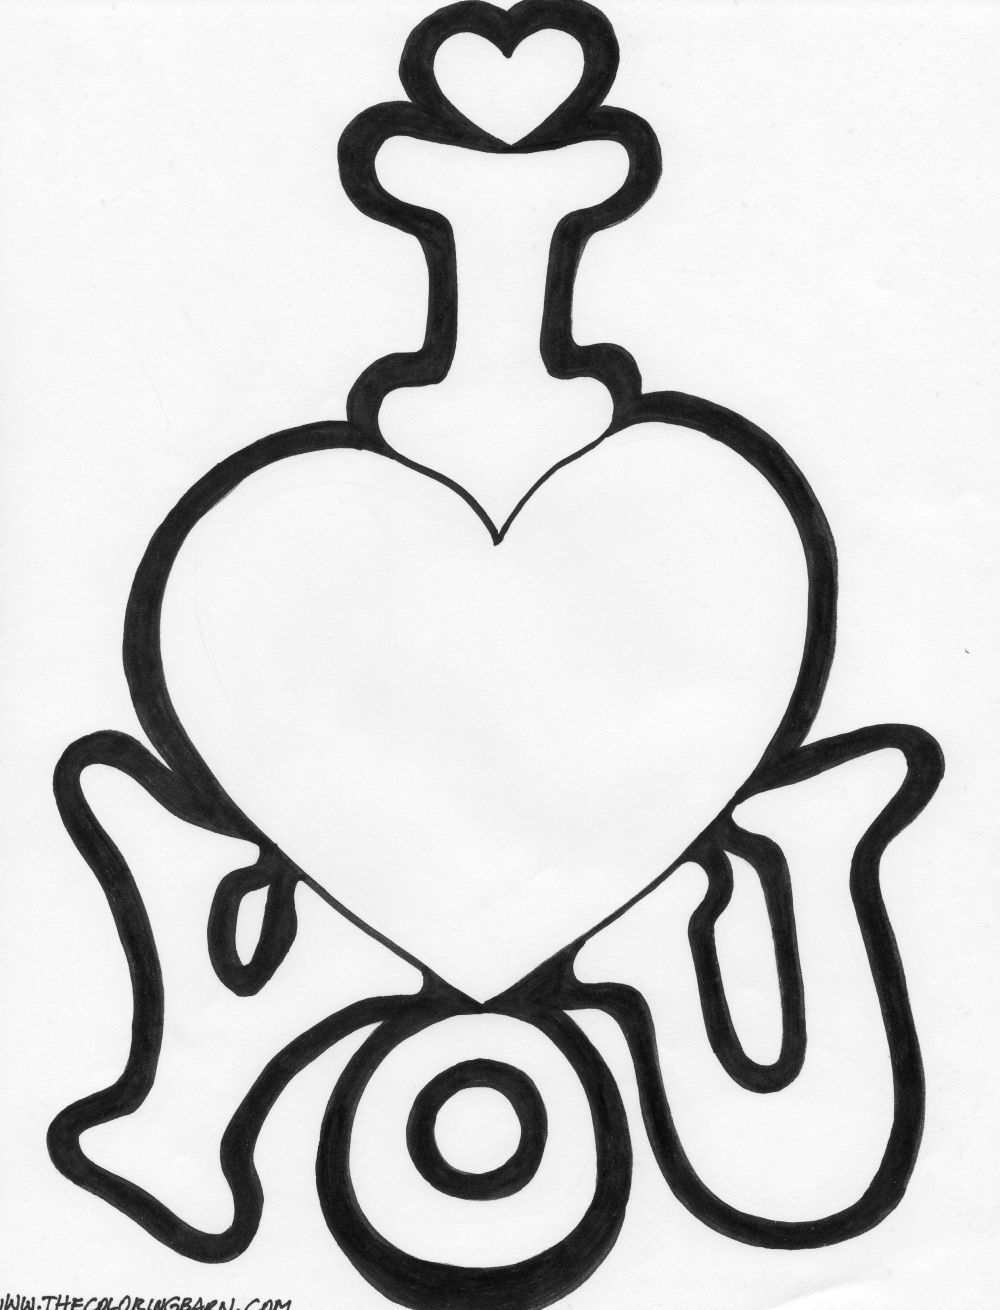 Free coloring pages love - I Love You Coloring Pages Coloring Page Be My Valentine Coloring Page Twist Heart Coloring